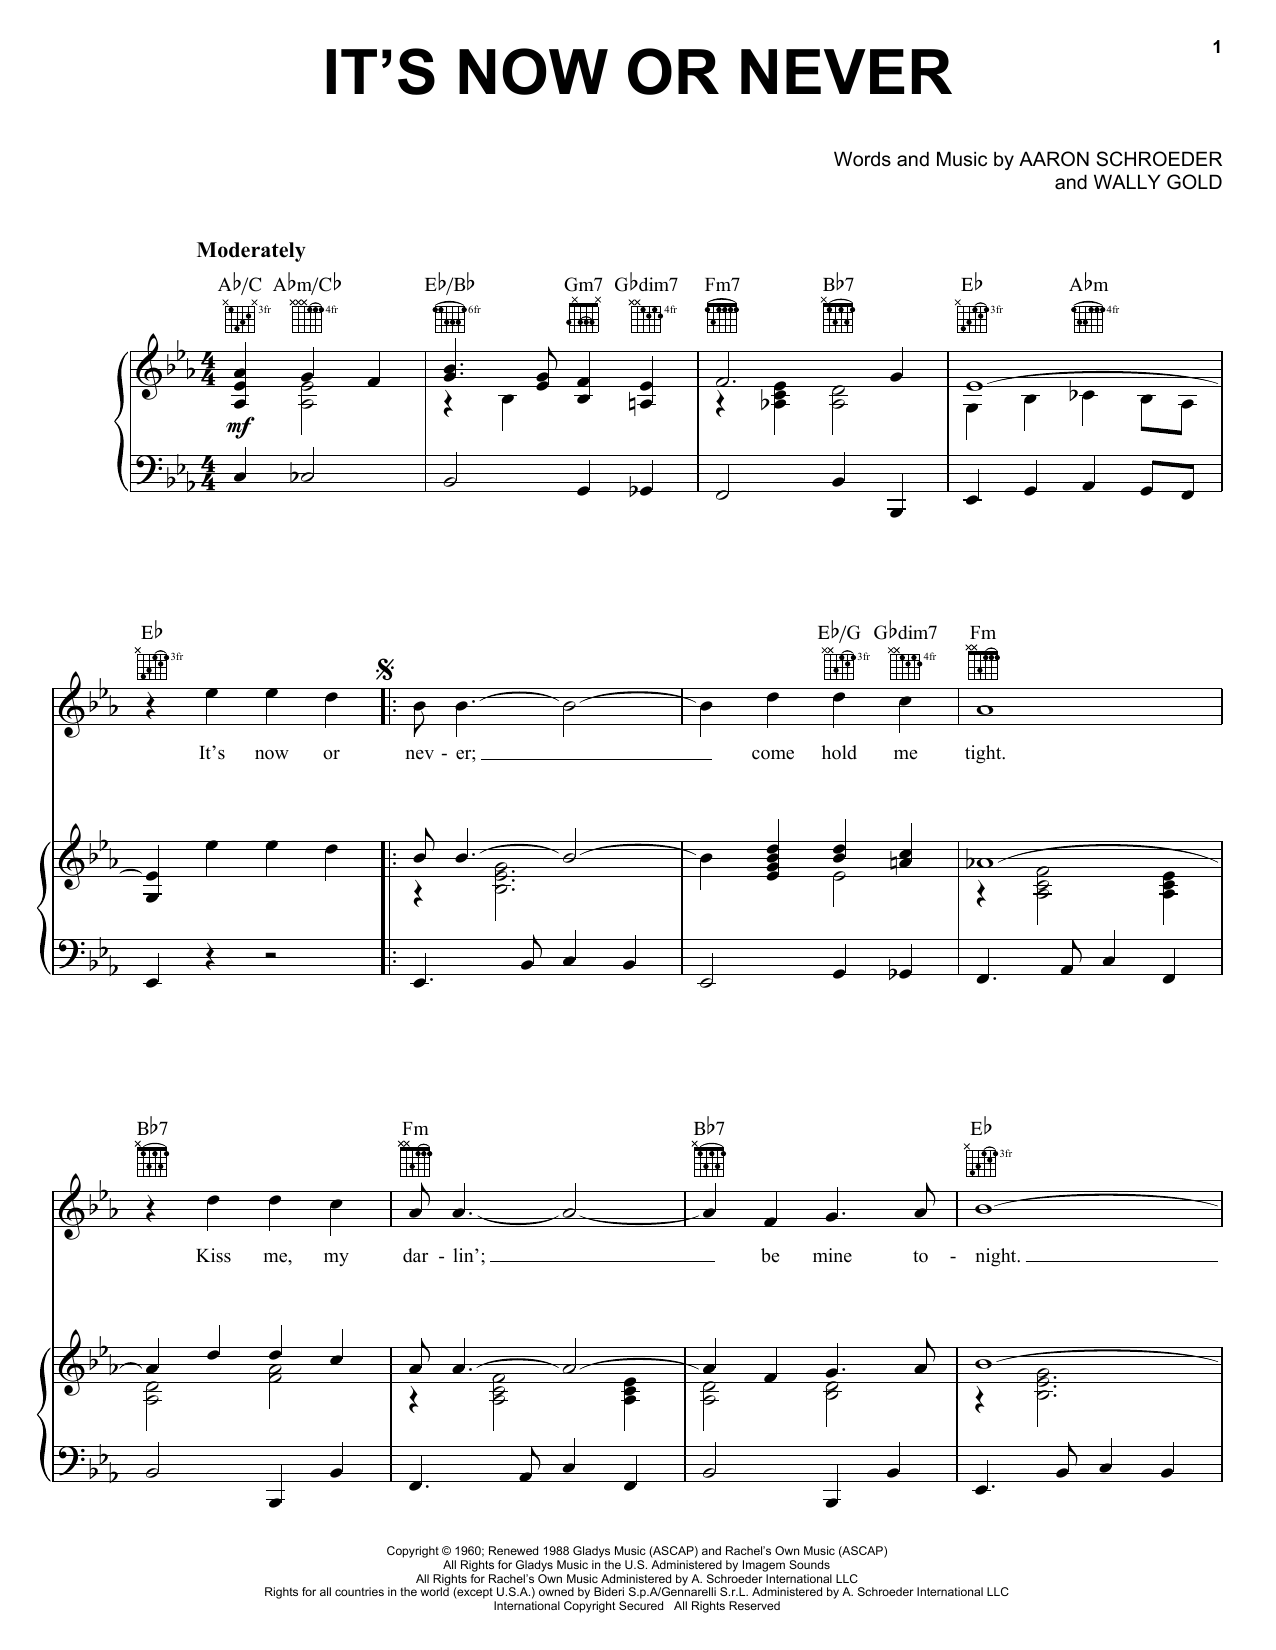 Elvis Presley It's Now Or Never sheet music notes and chords